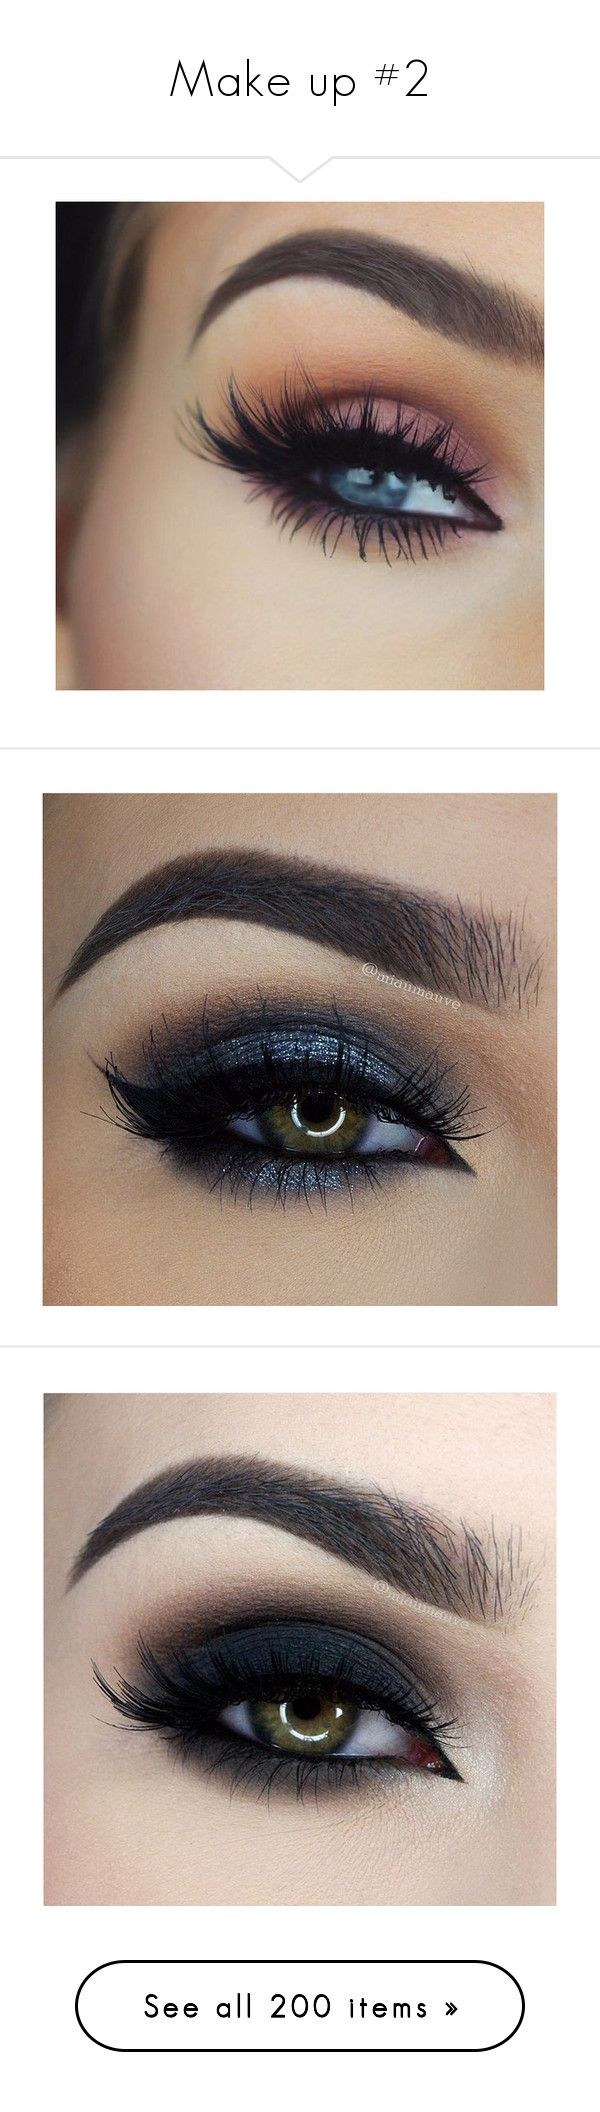 """""""Make up #2"""" by bvblunaticfringe ❤ liked on Polyvore featuring beauty products, makeup, eyes, beauty, nail care, nail treatments, nails, eye makeup, make and eyebrow cosmetics"""